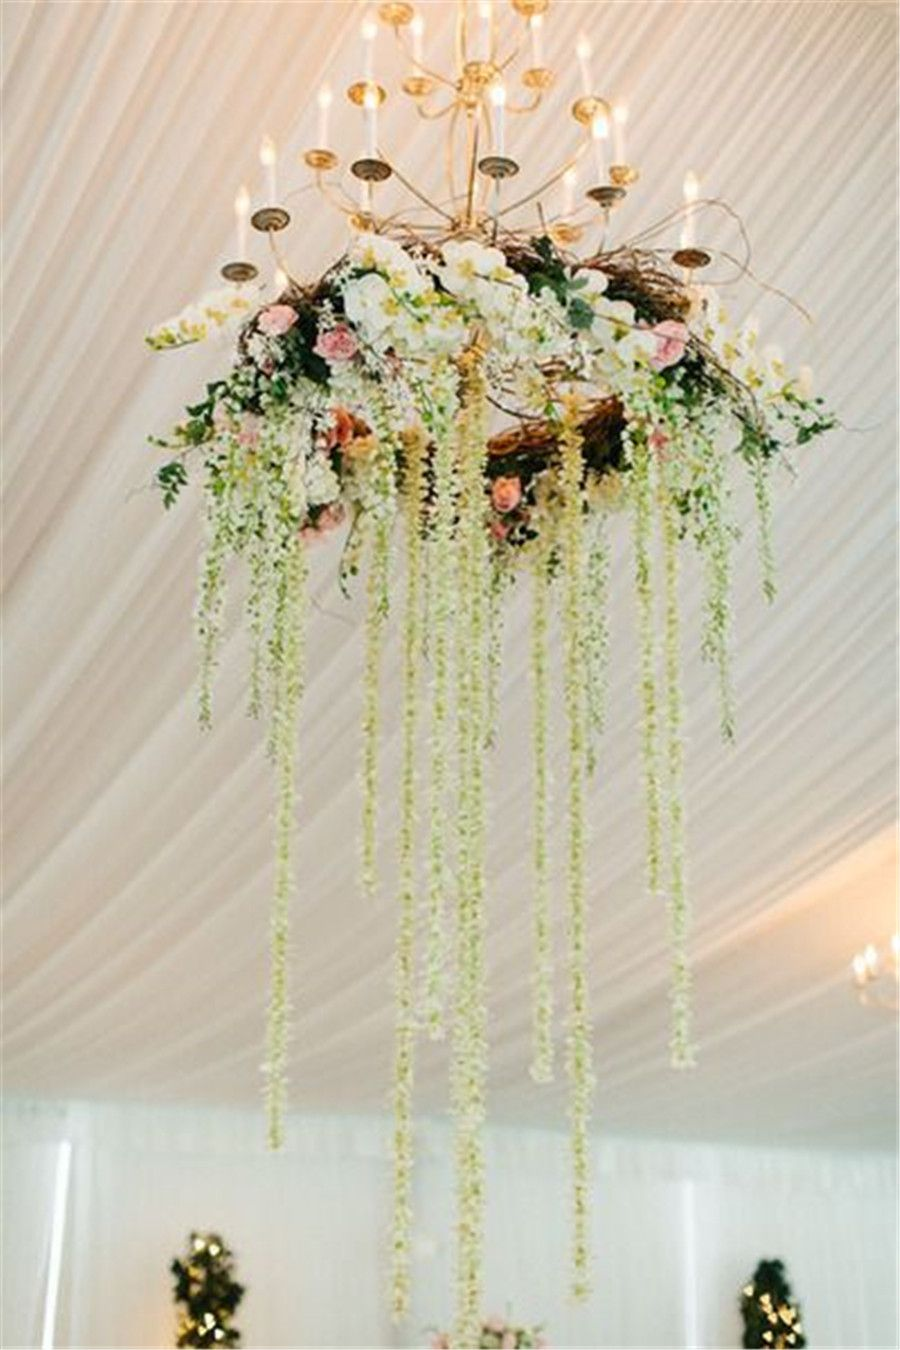 Wedding Ideas 23 Stunning Flower Chandelier Wow Your Guests More